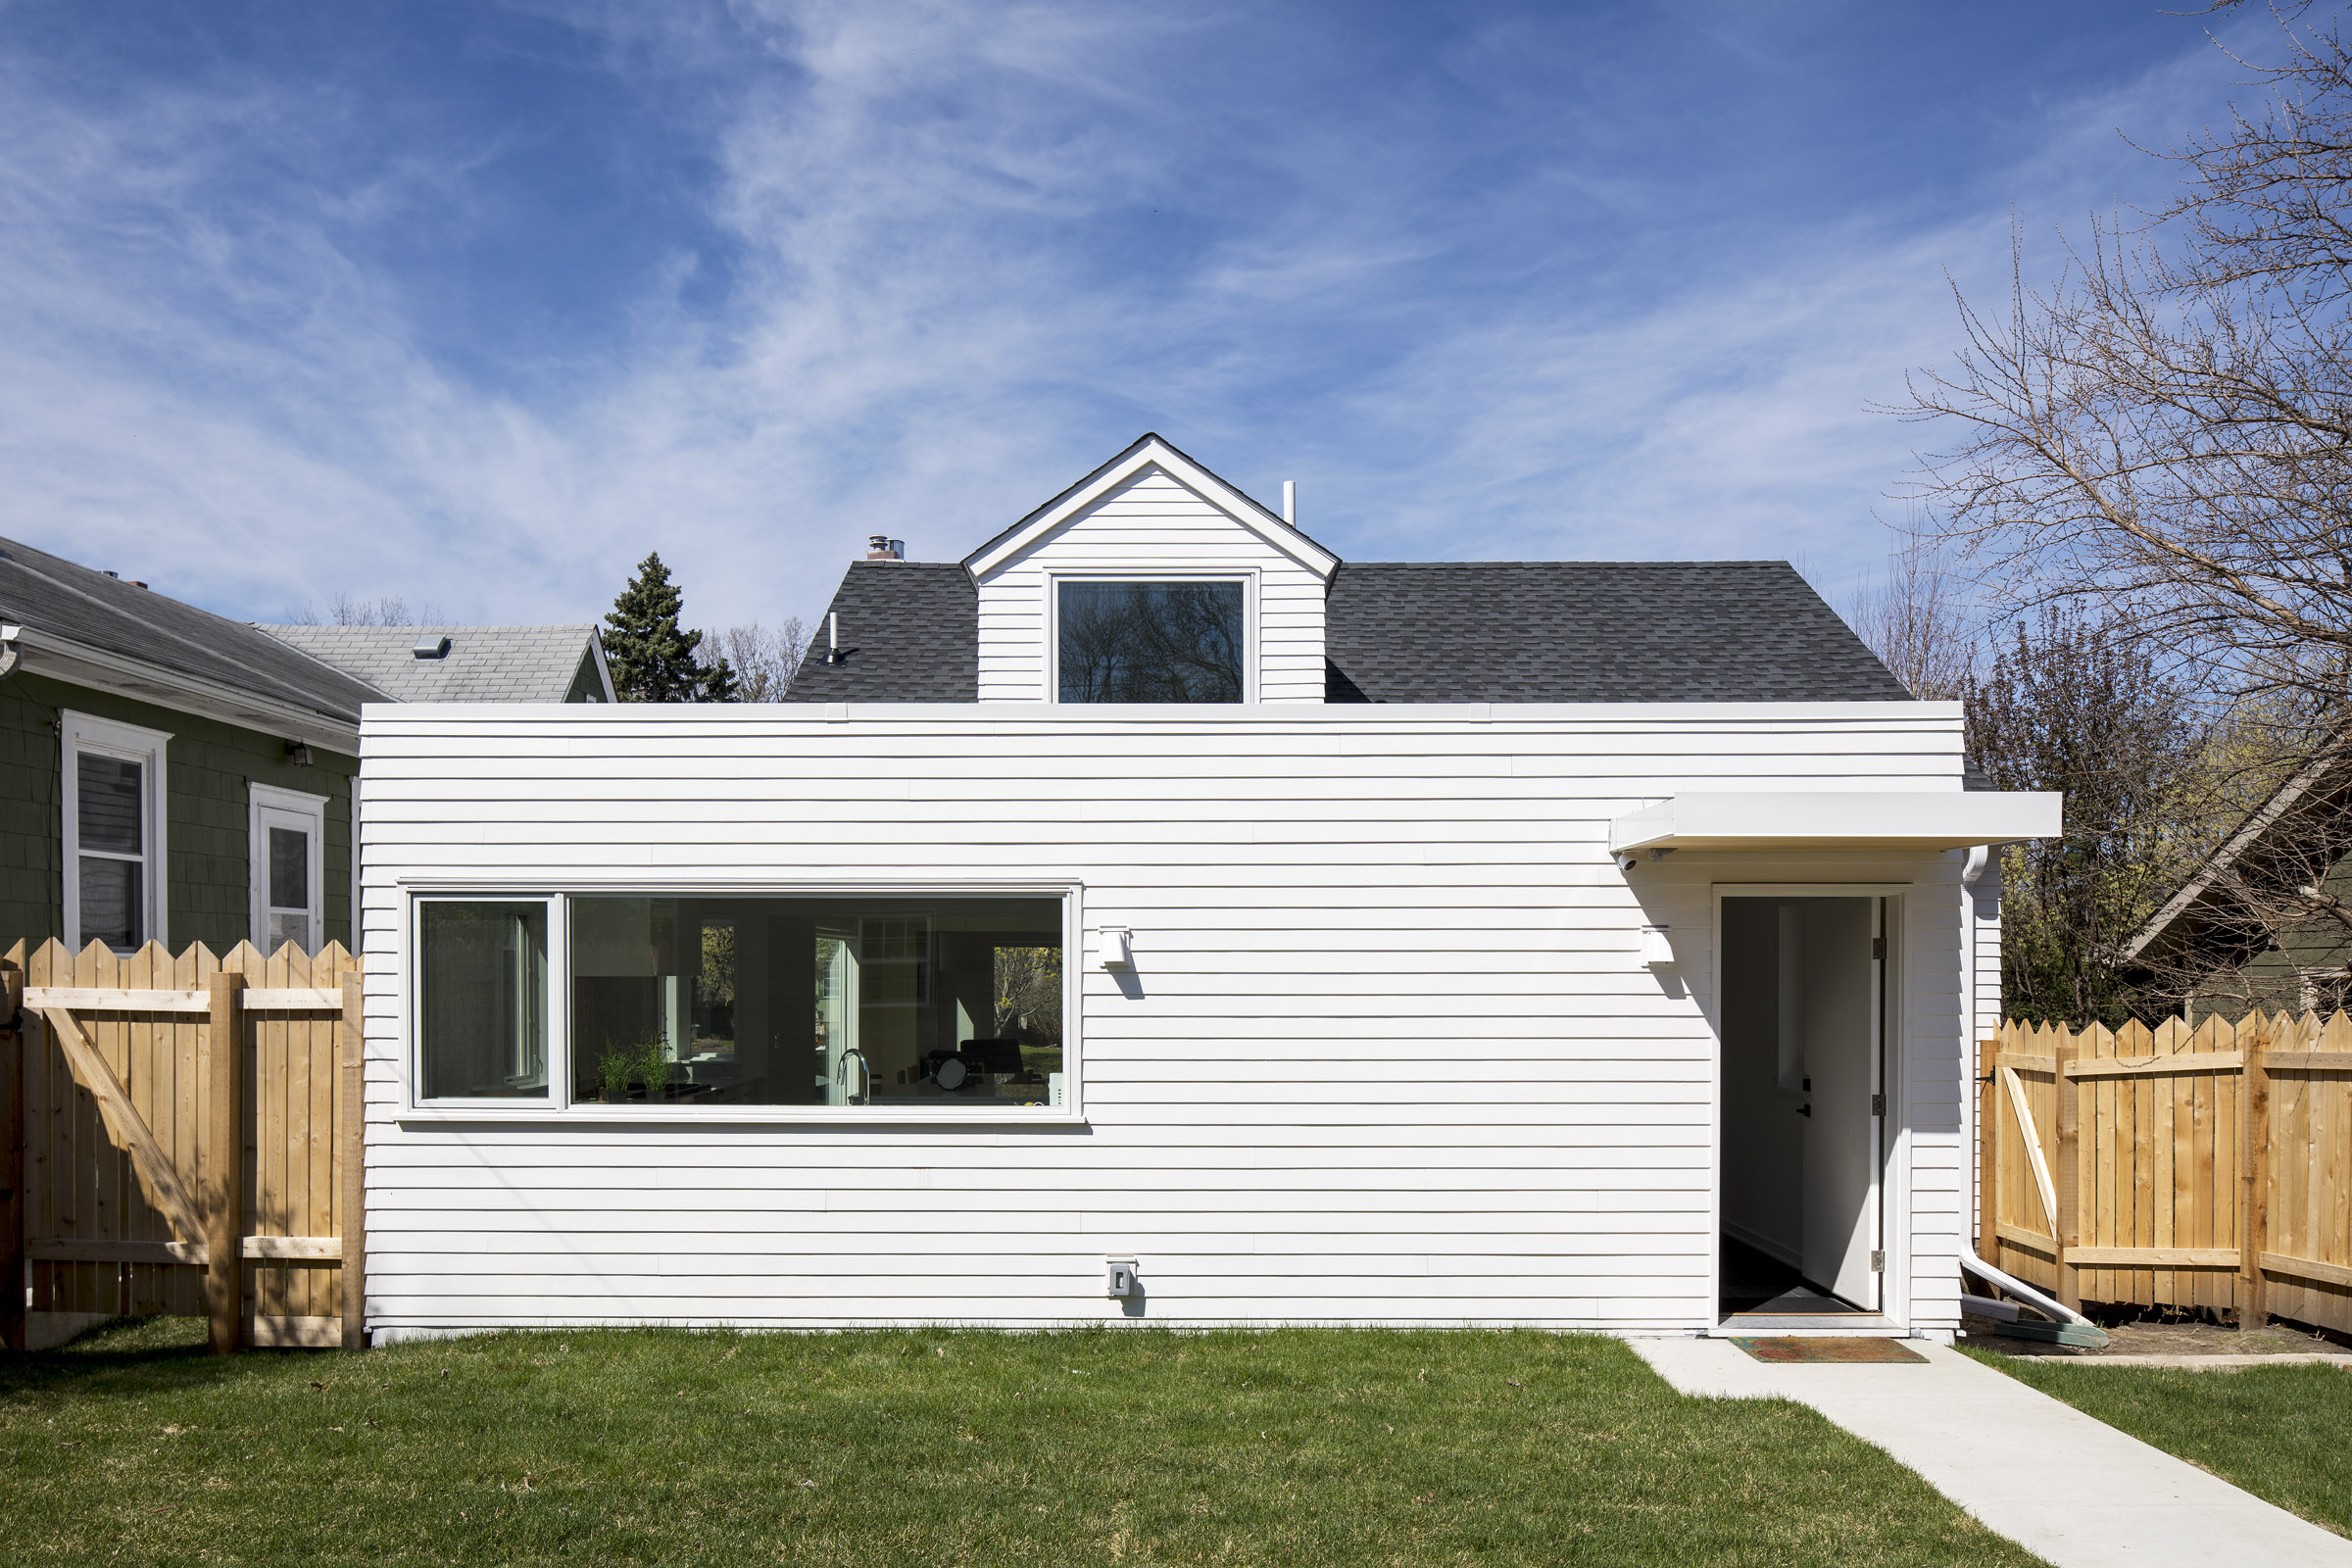 Small modern bungalow home renovation by Christian Dean Architecture